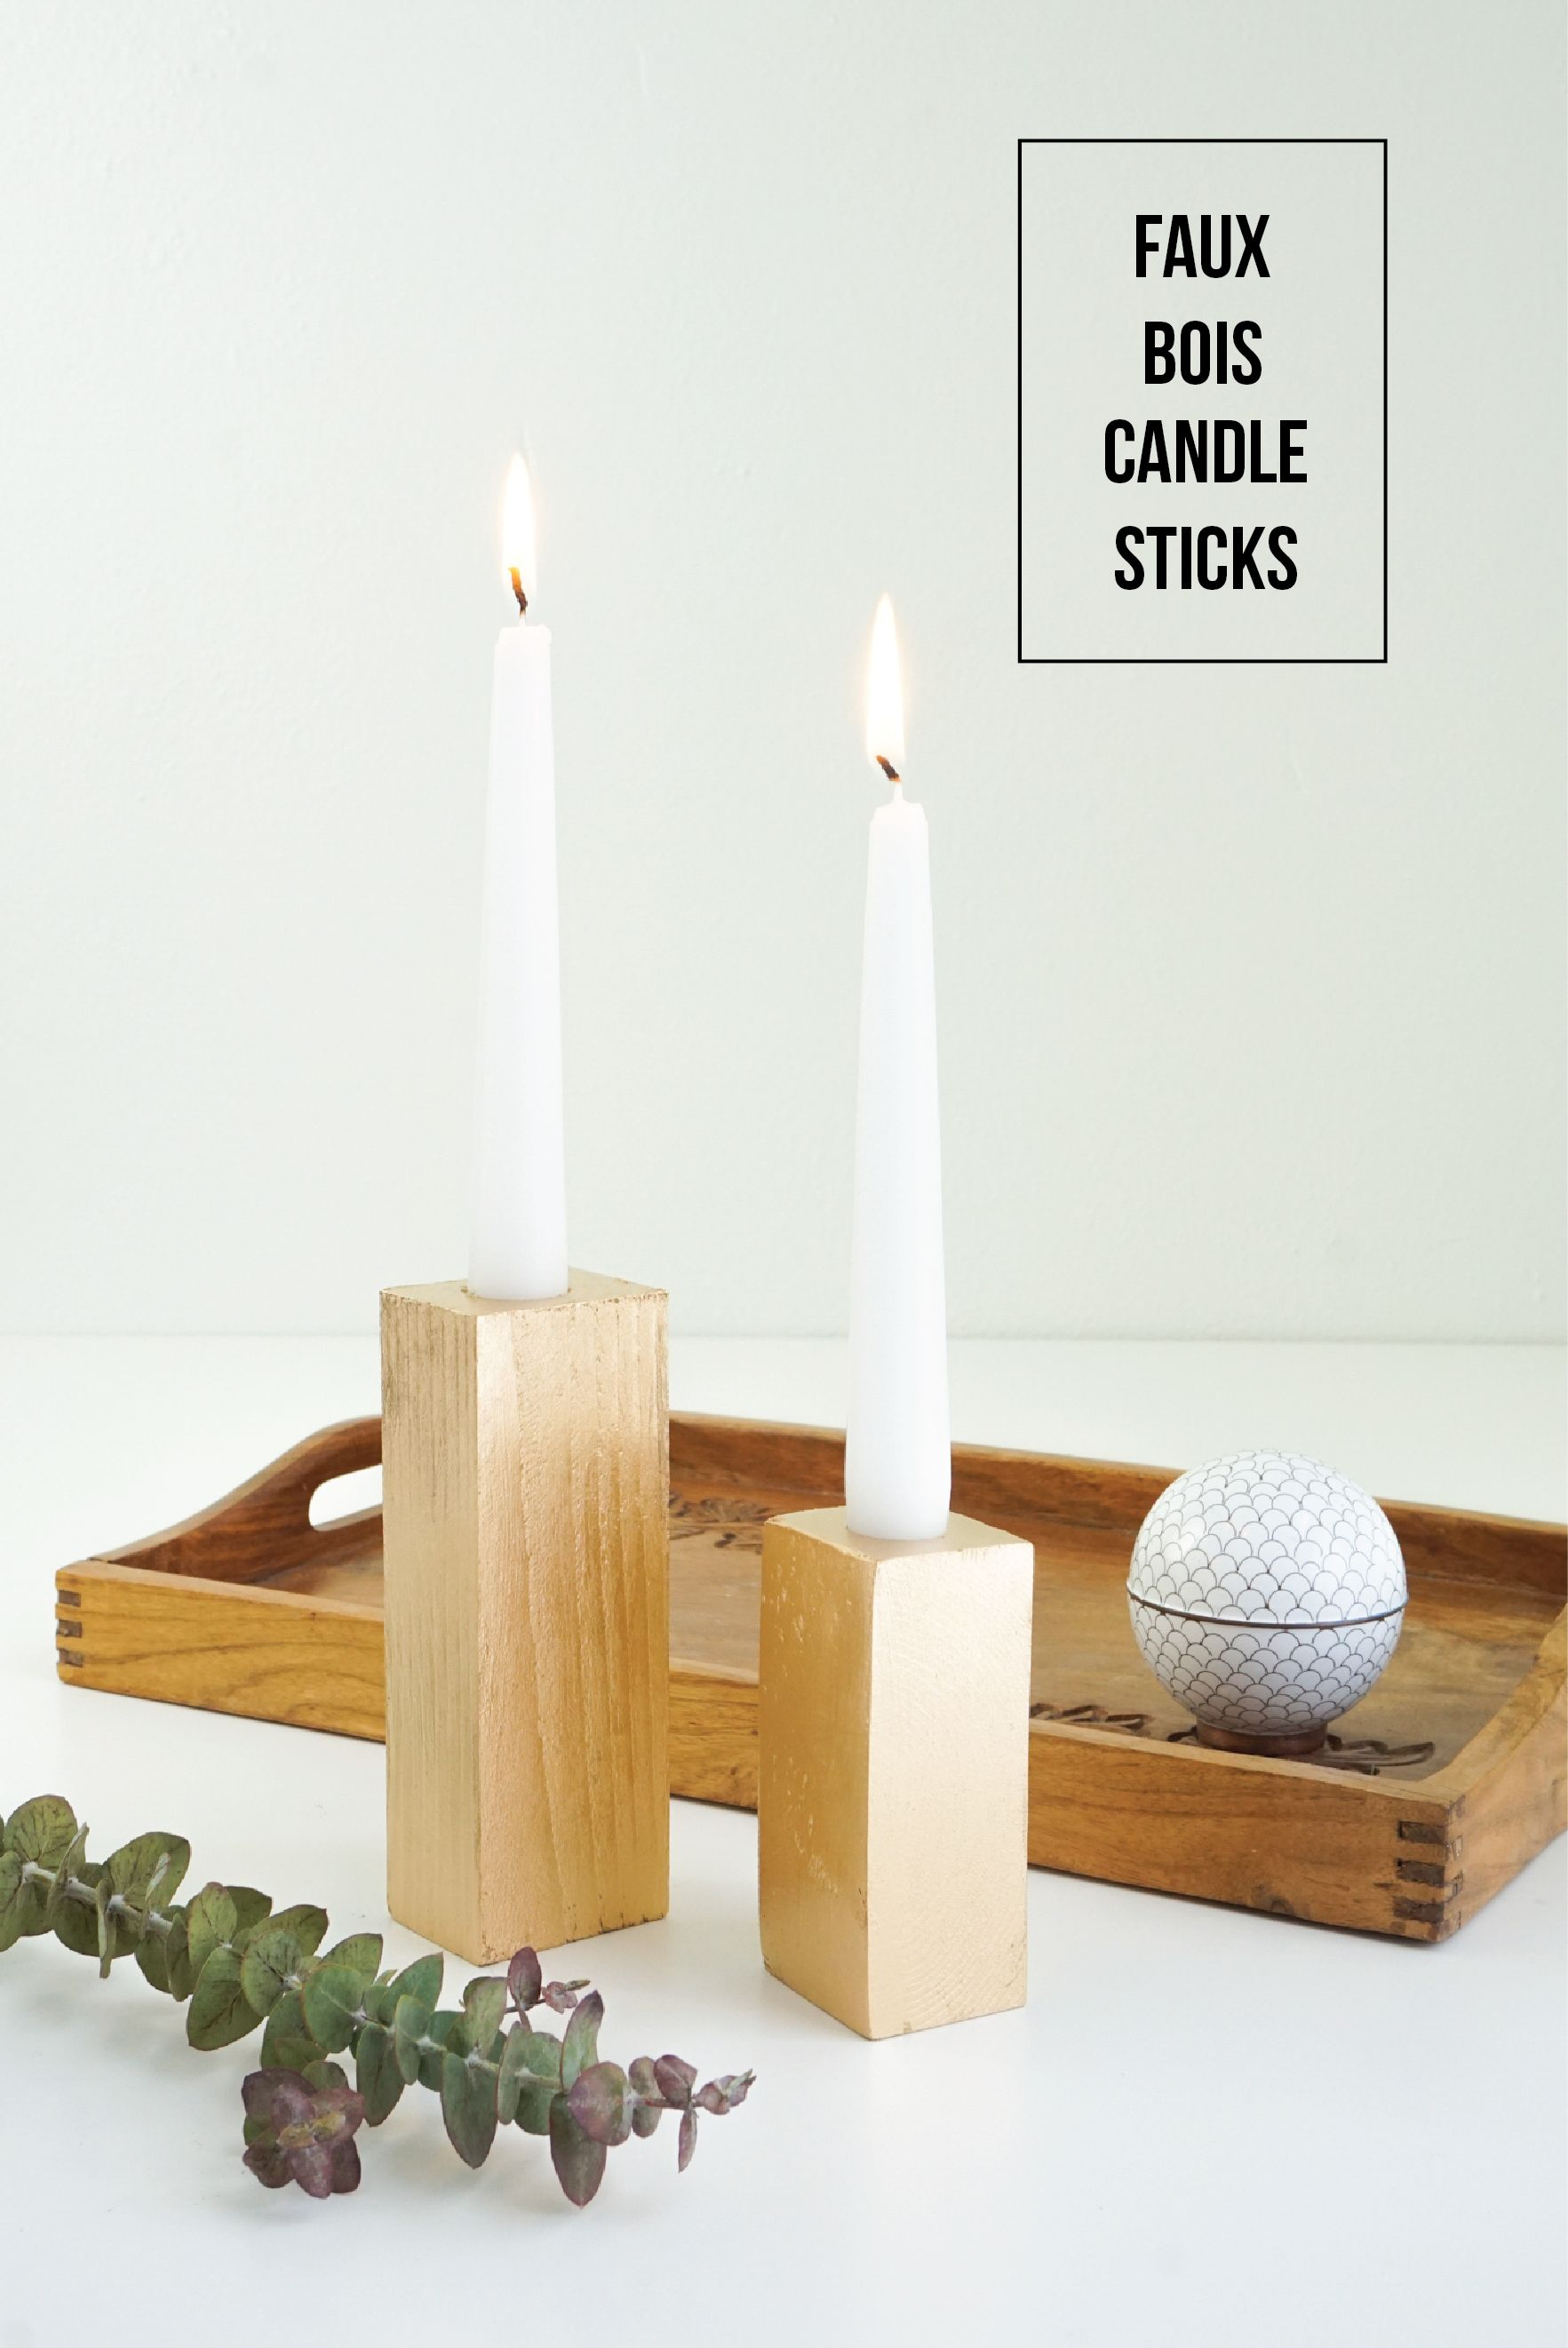 Faux Bois Candle Sticks Project